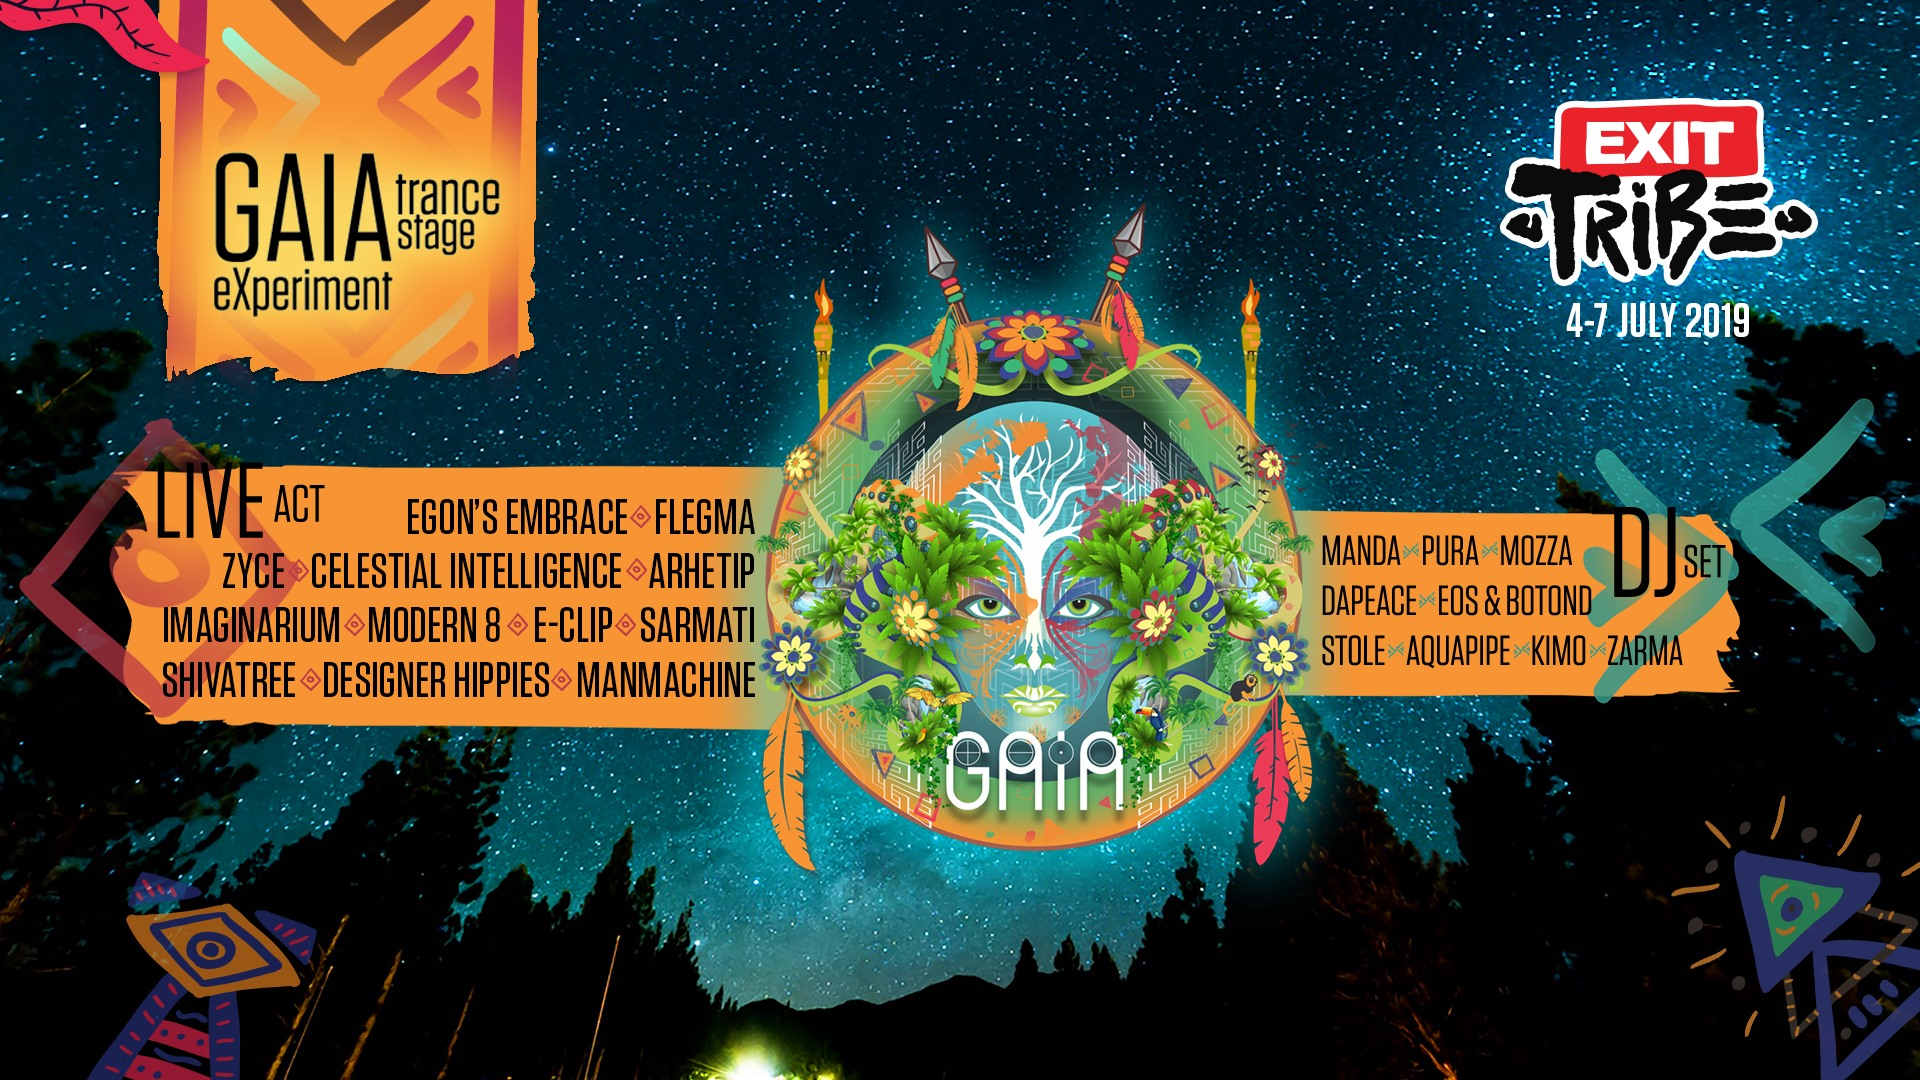 Gaia Experiment Trance Stage EXIT 2019